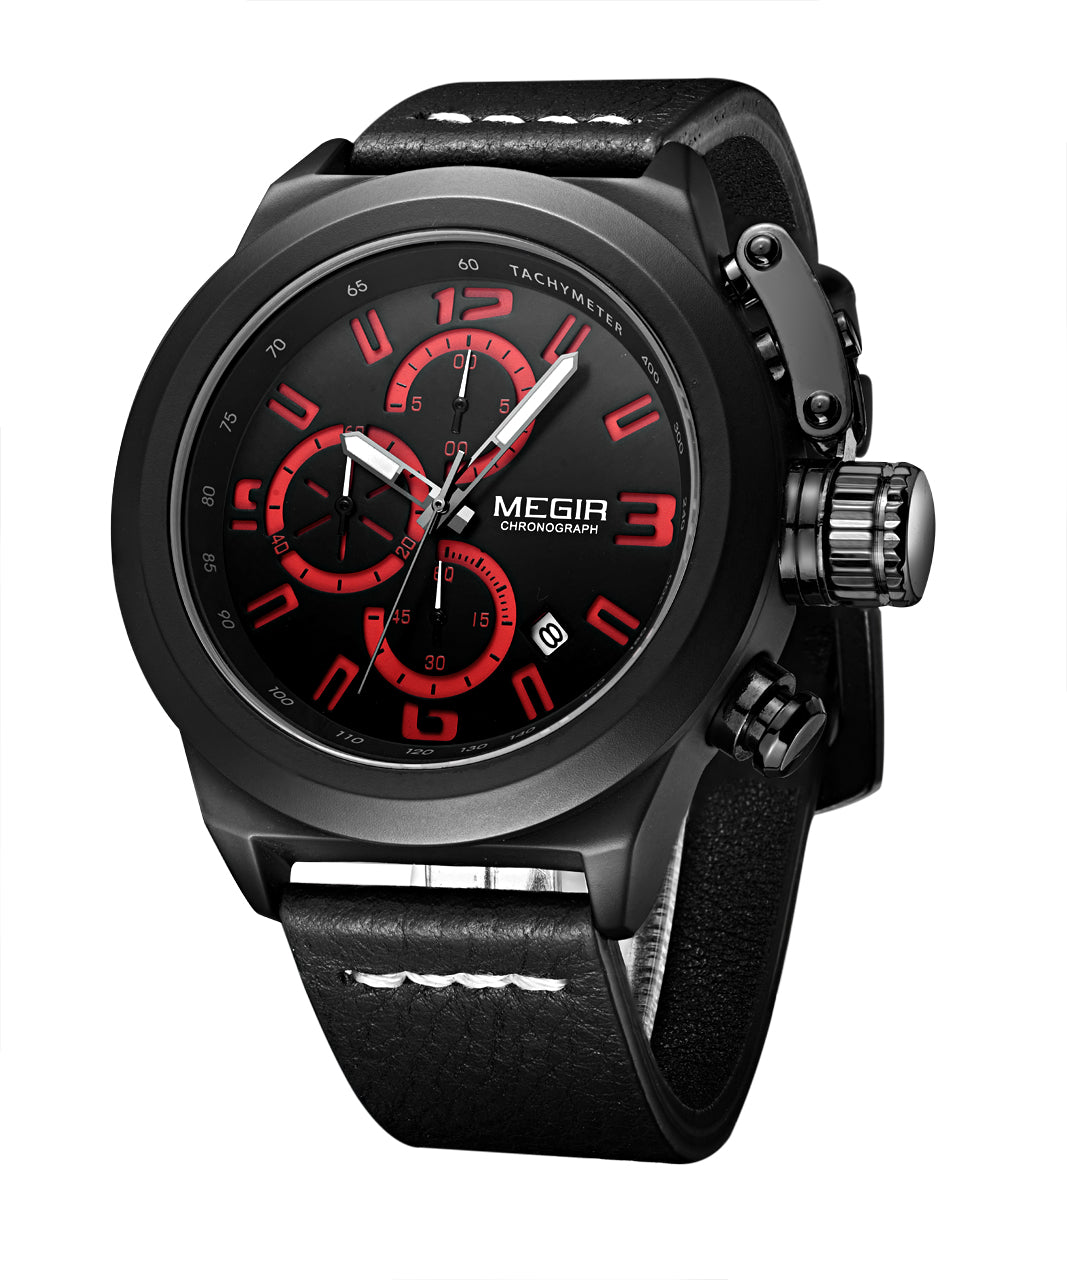 MEGIR Quartz Watch for Men, Multifunction Wristwatch, 2029